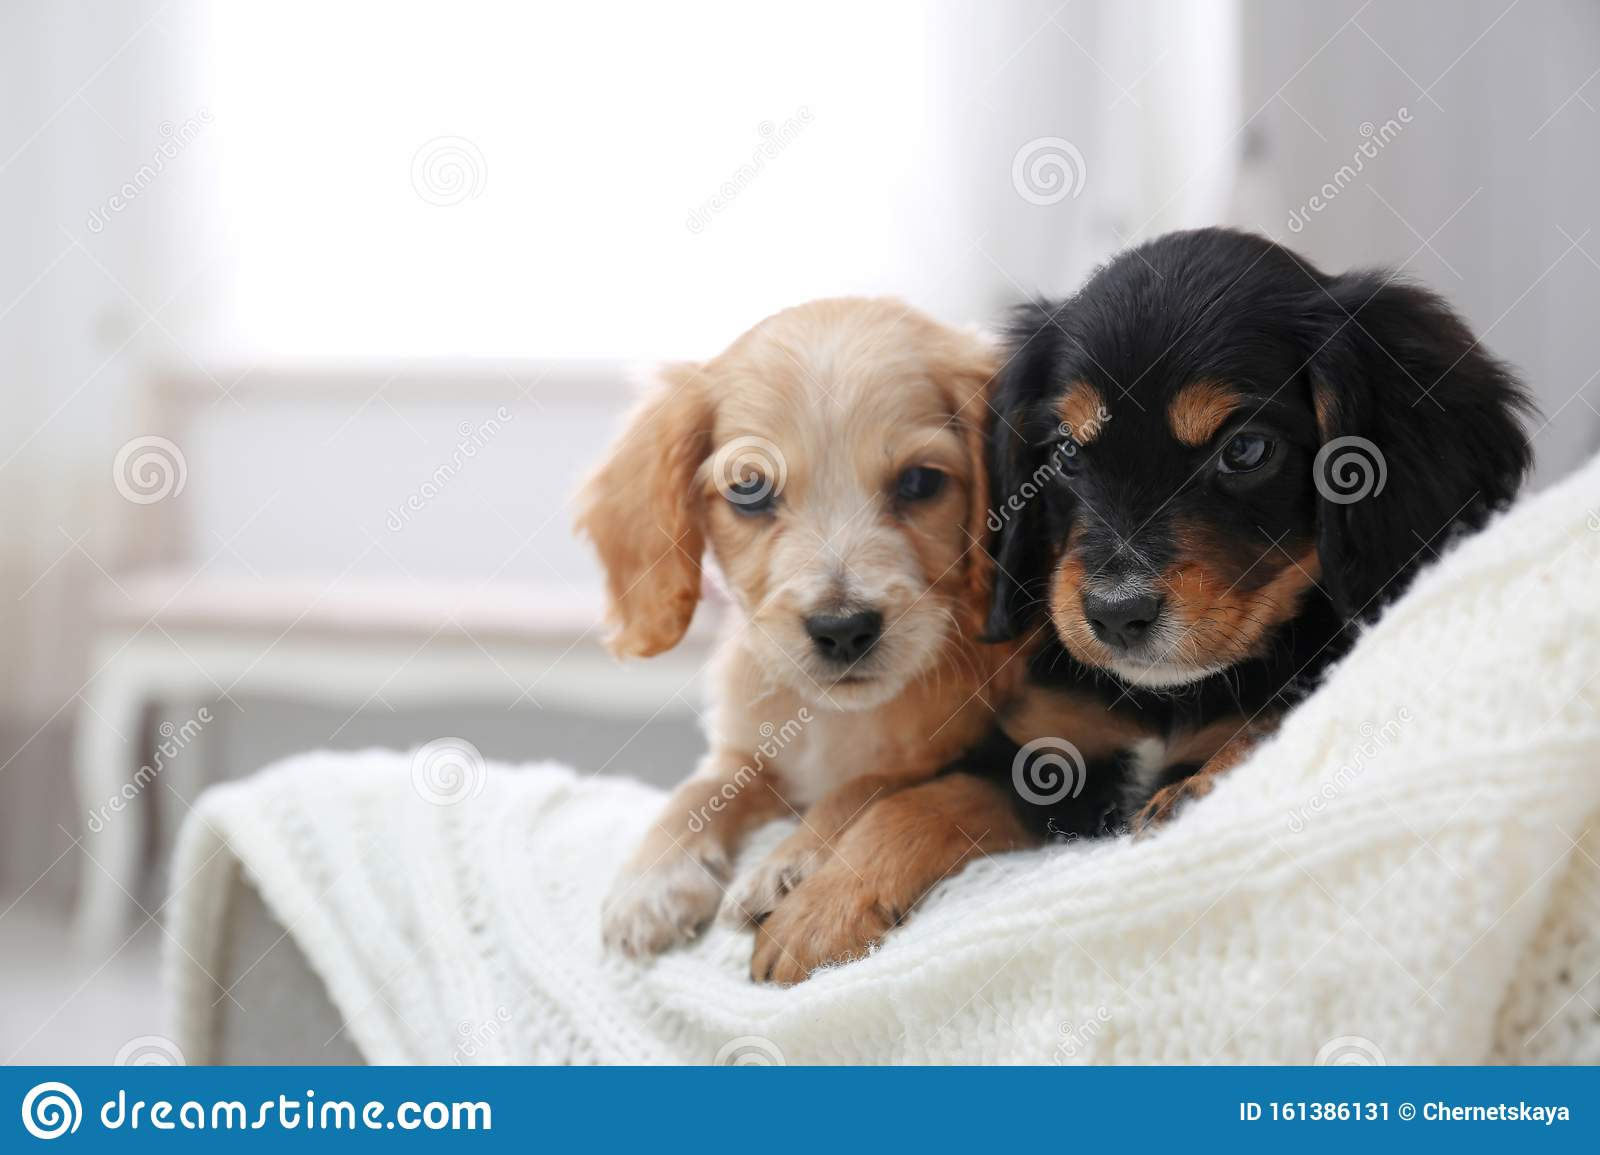 Cute English Cocker Spaniel Puppies On Sofa Space For Text Stock Image Image Of Carnivore Companion 161386131